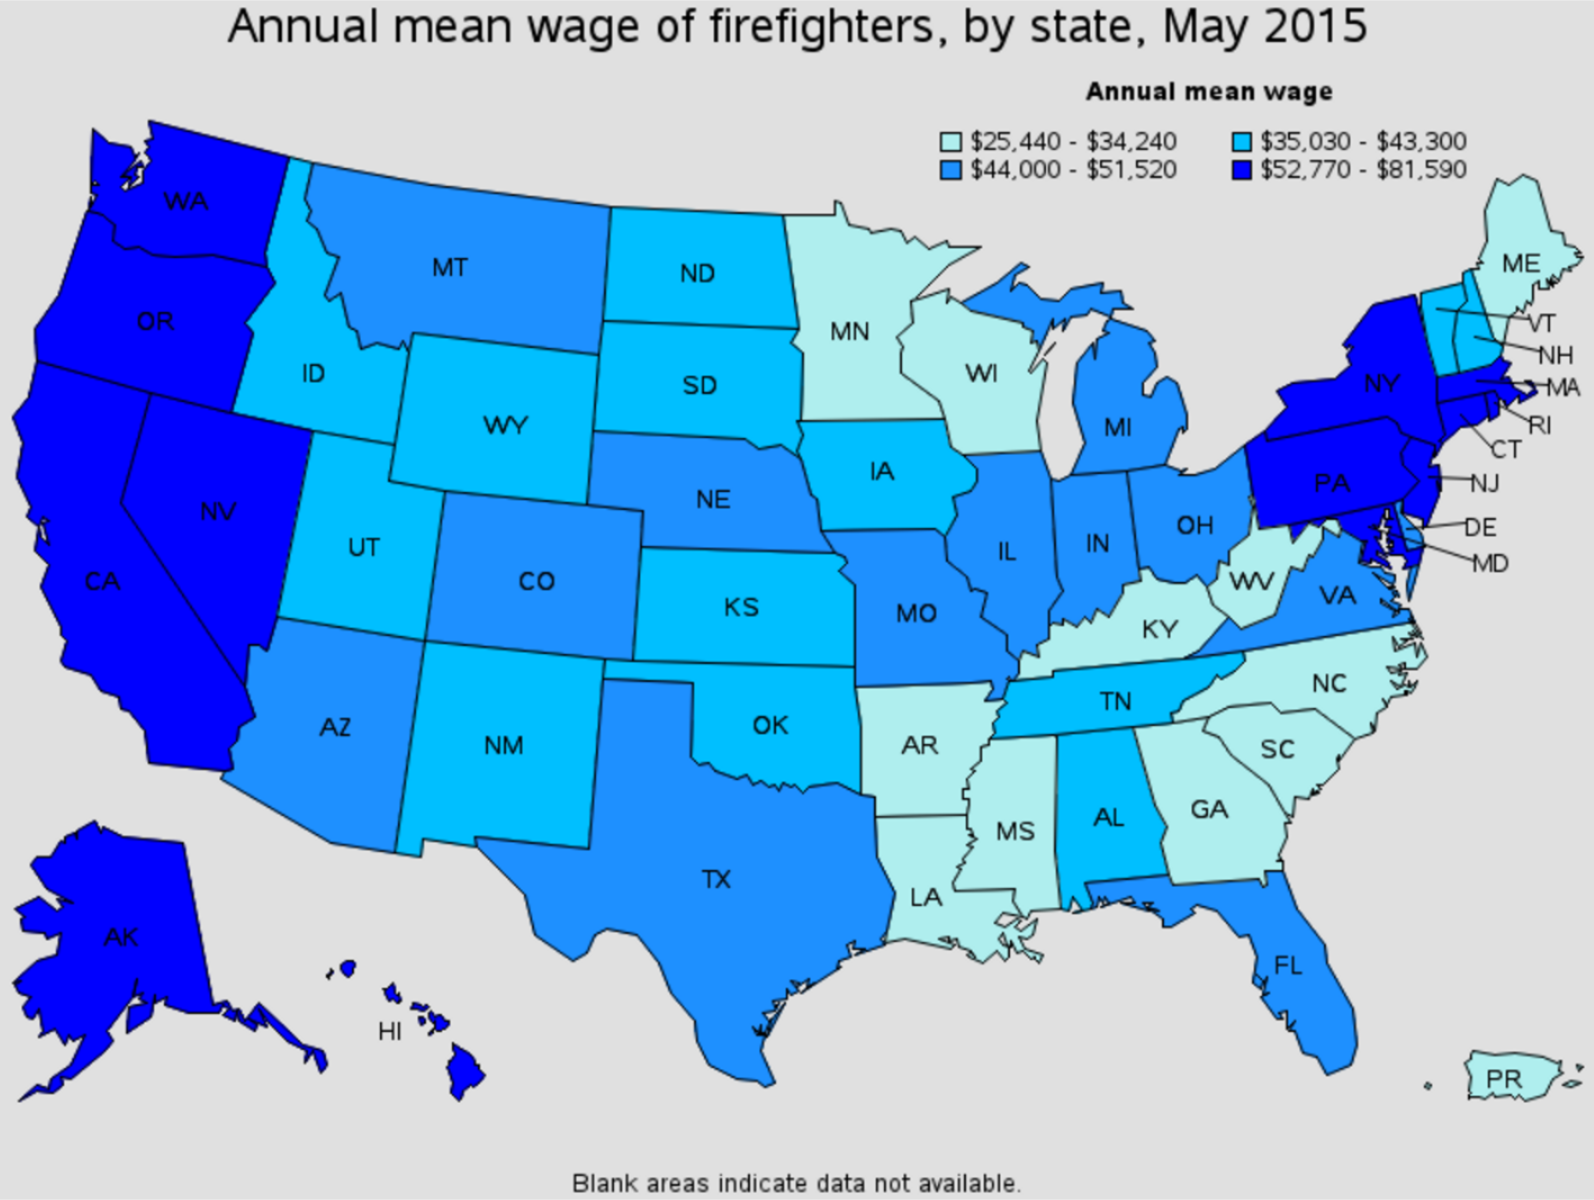 firefighter average salary by state Yoakum Texas